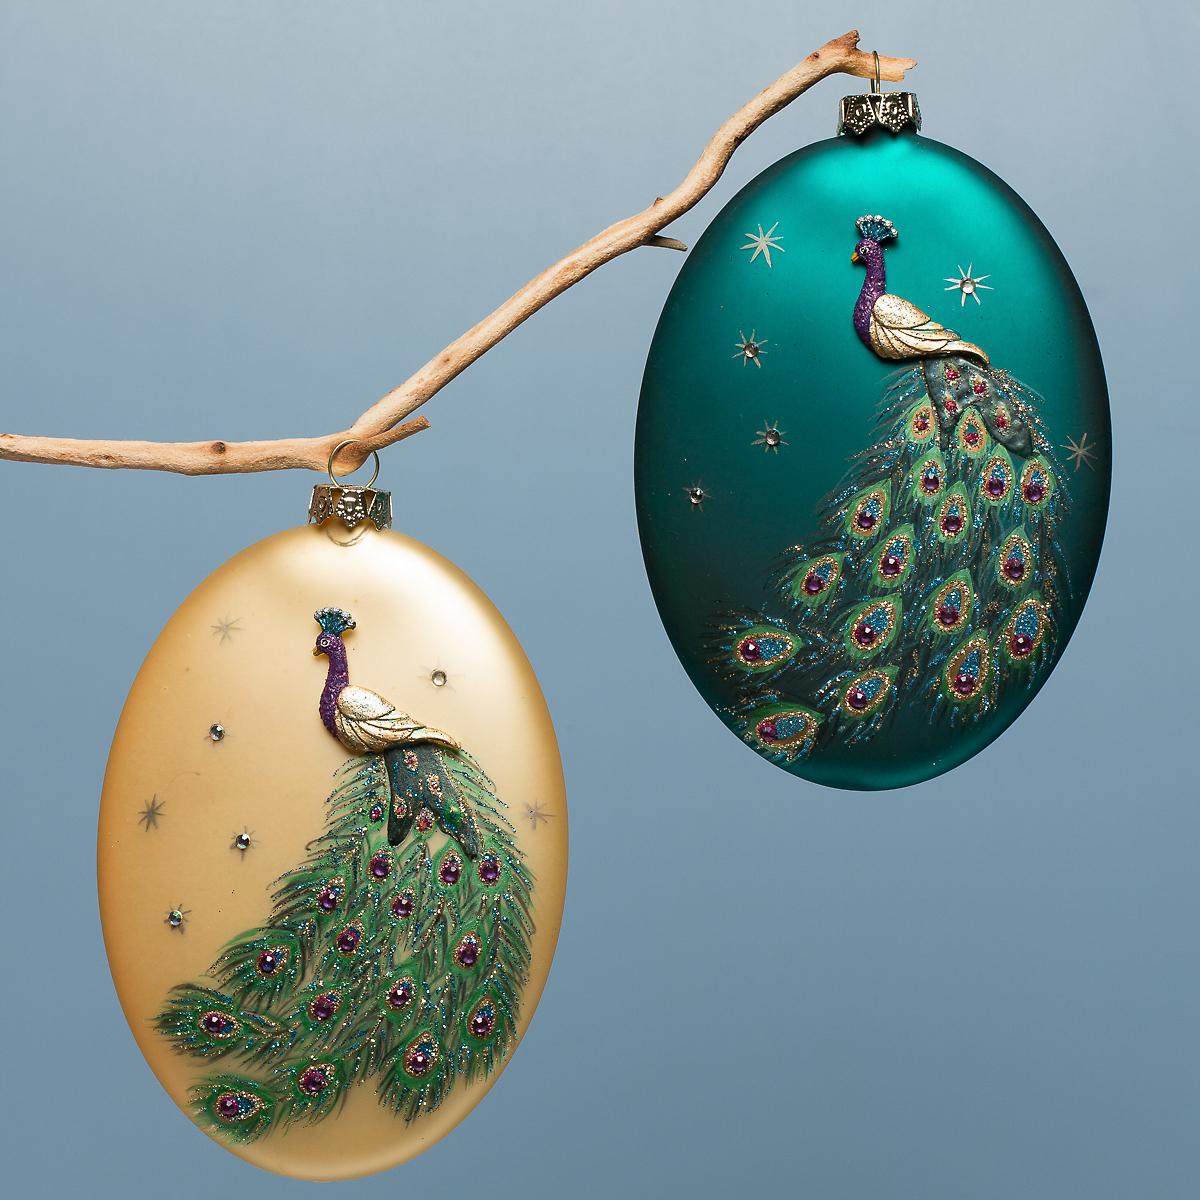 How To Decorate Glass Ornaments For Christmas: Glass Painted Peacock Ornaments, Set Of 2